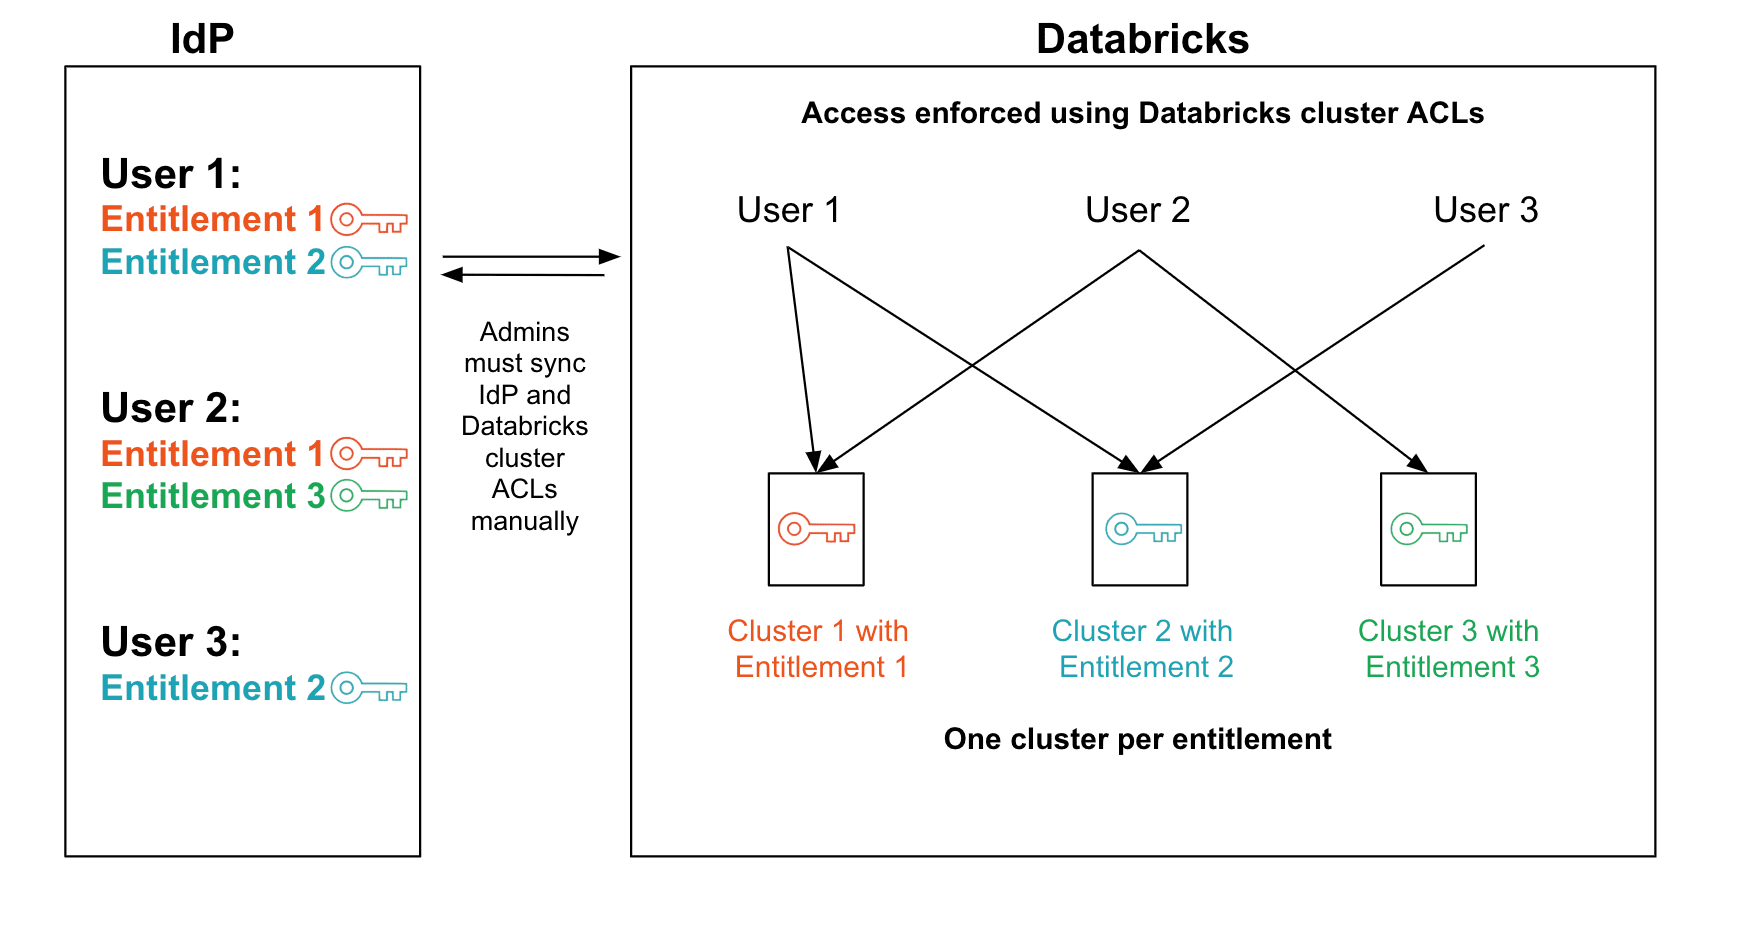 Sub-Optimal System 1: One EC2 instance per entitlement